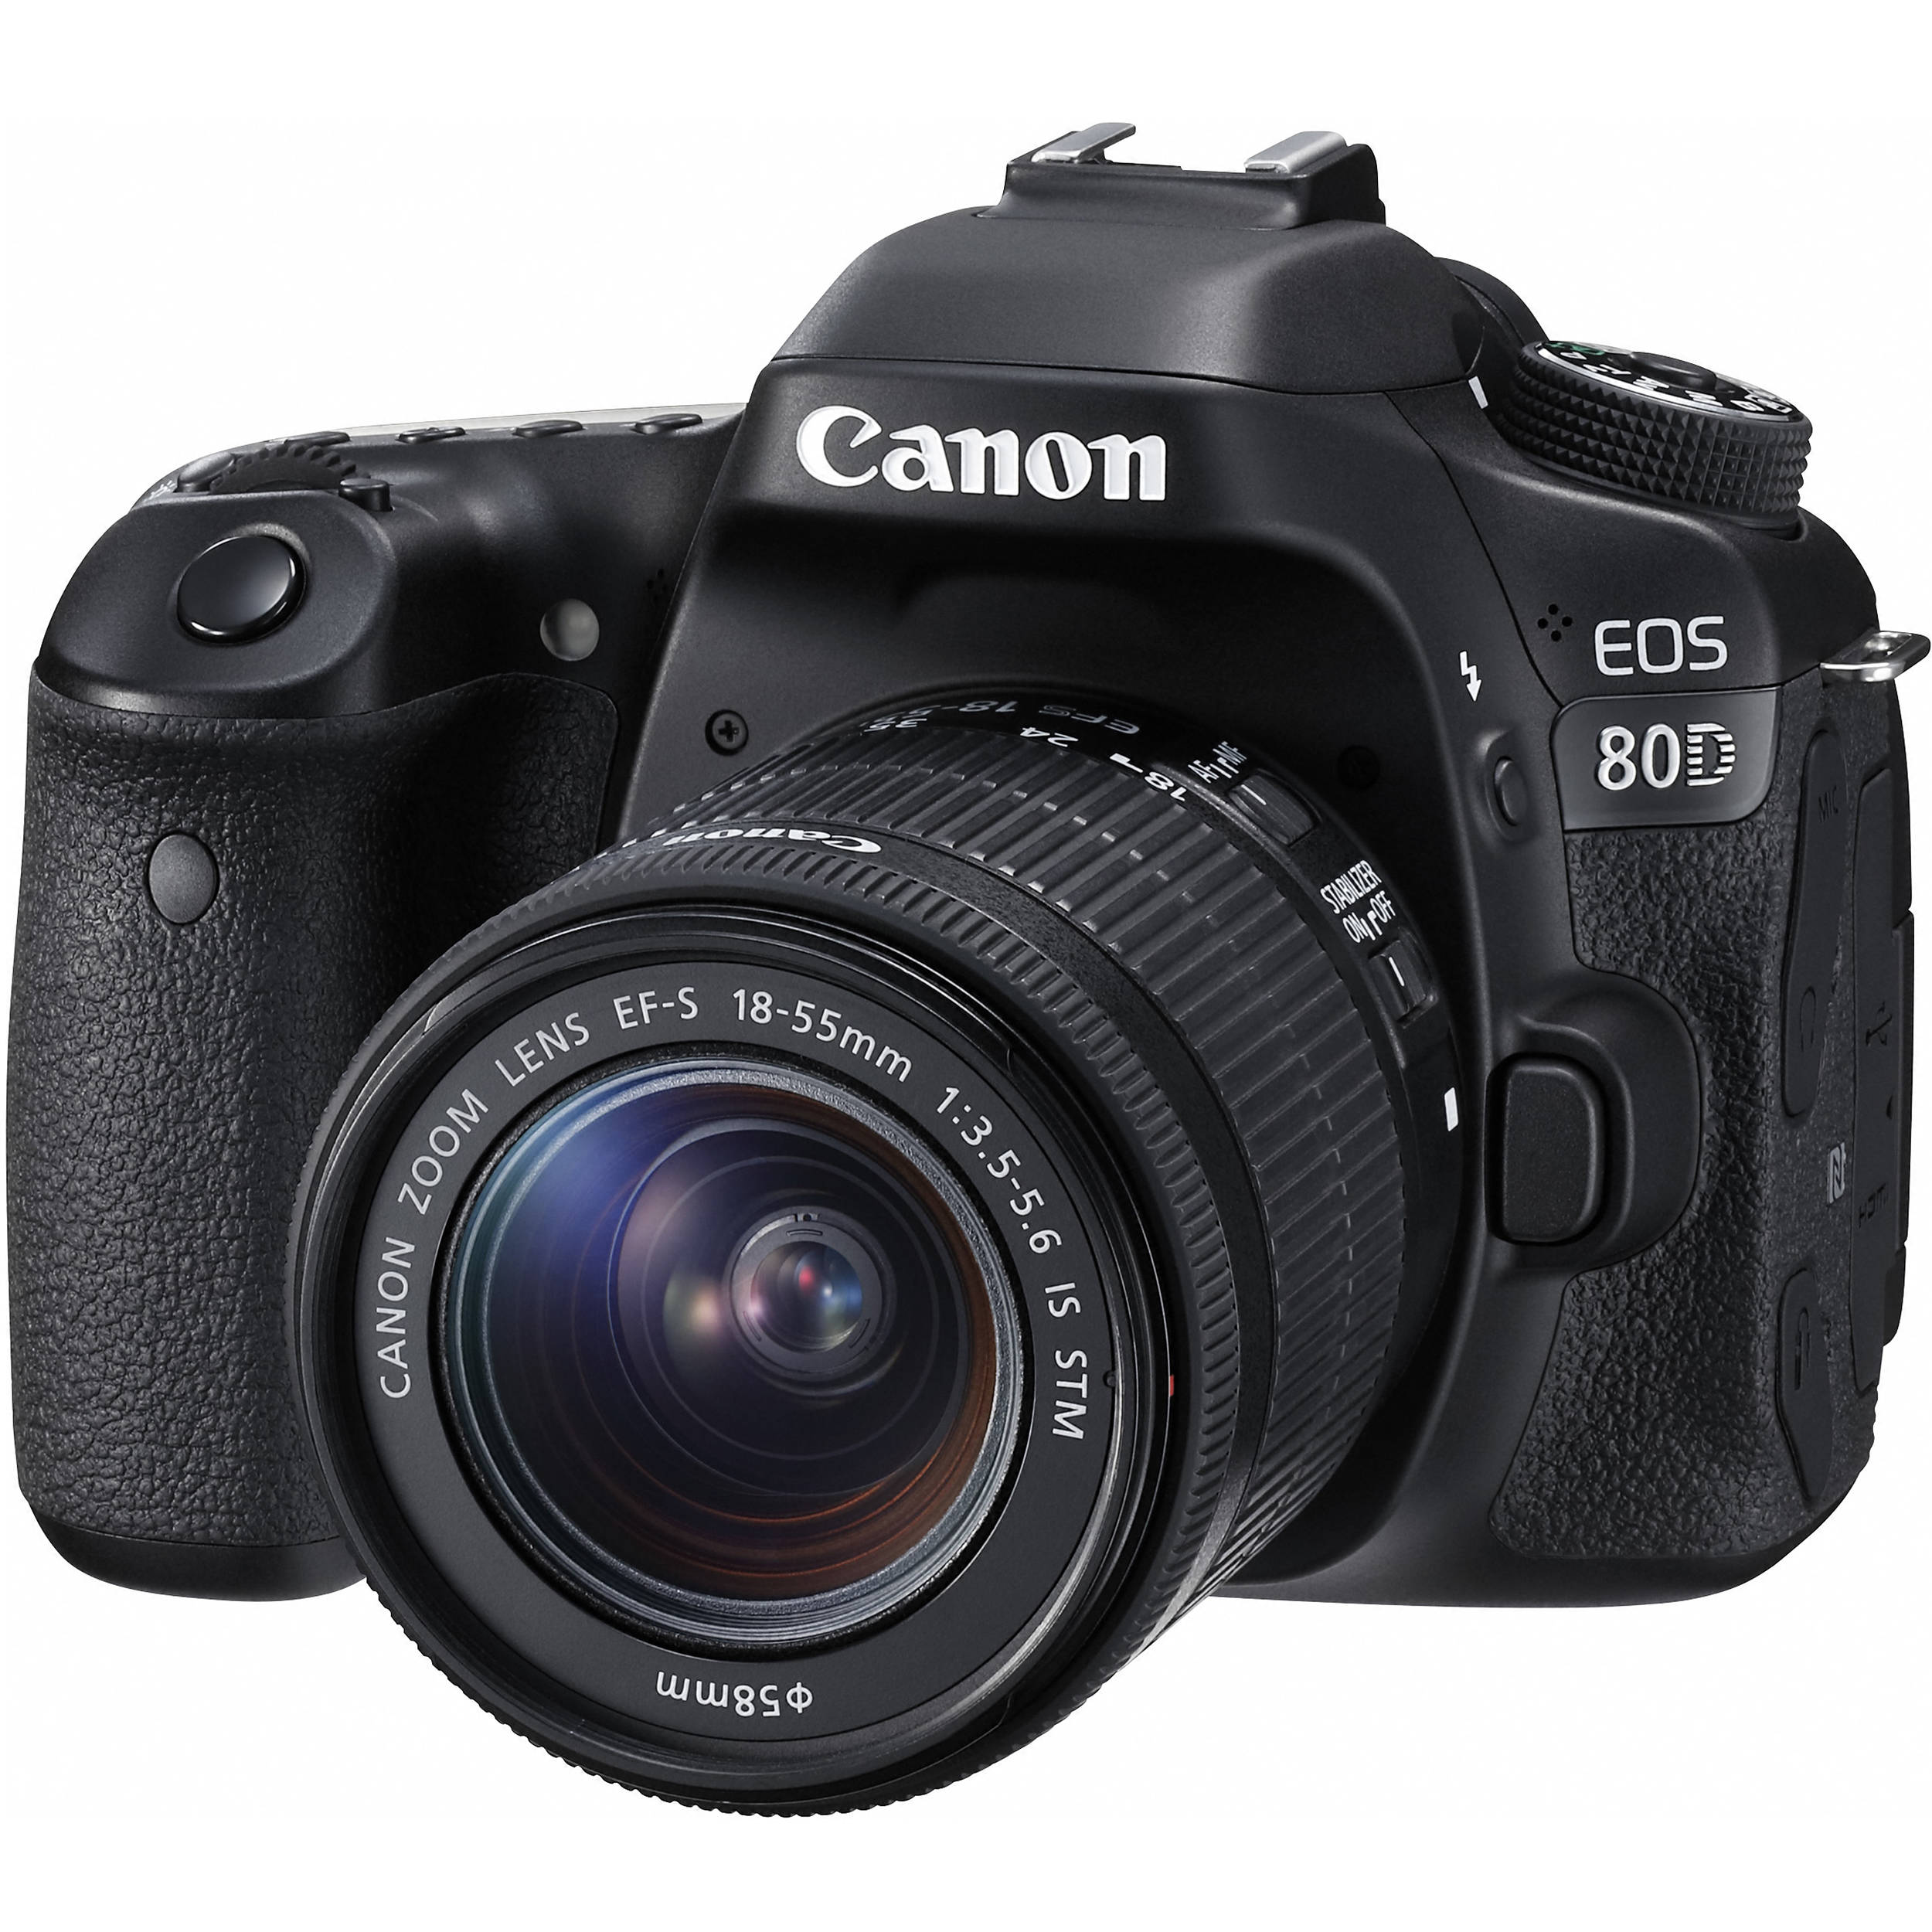 Canon Cameras Dslr Point And Shoot Pricelist 2018 Kamera Eos 1300d 18 55 Iii